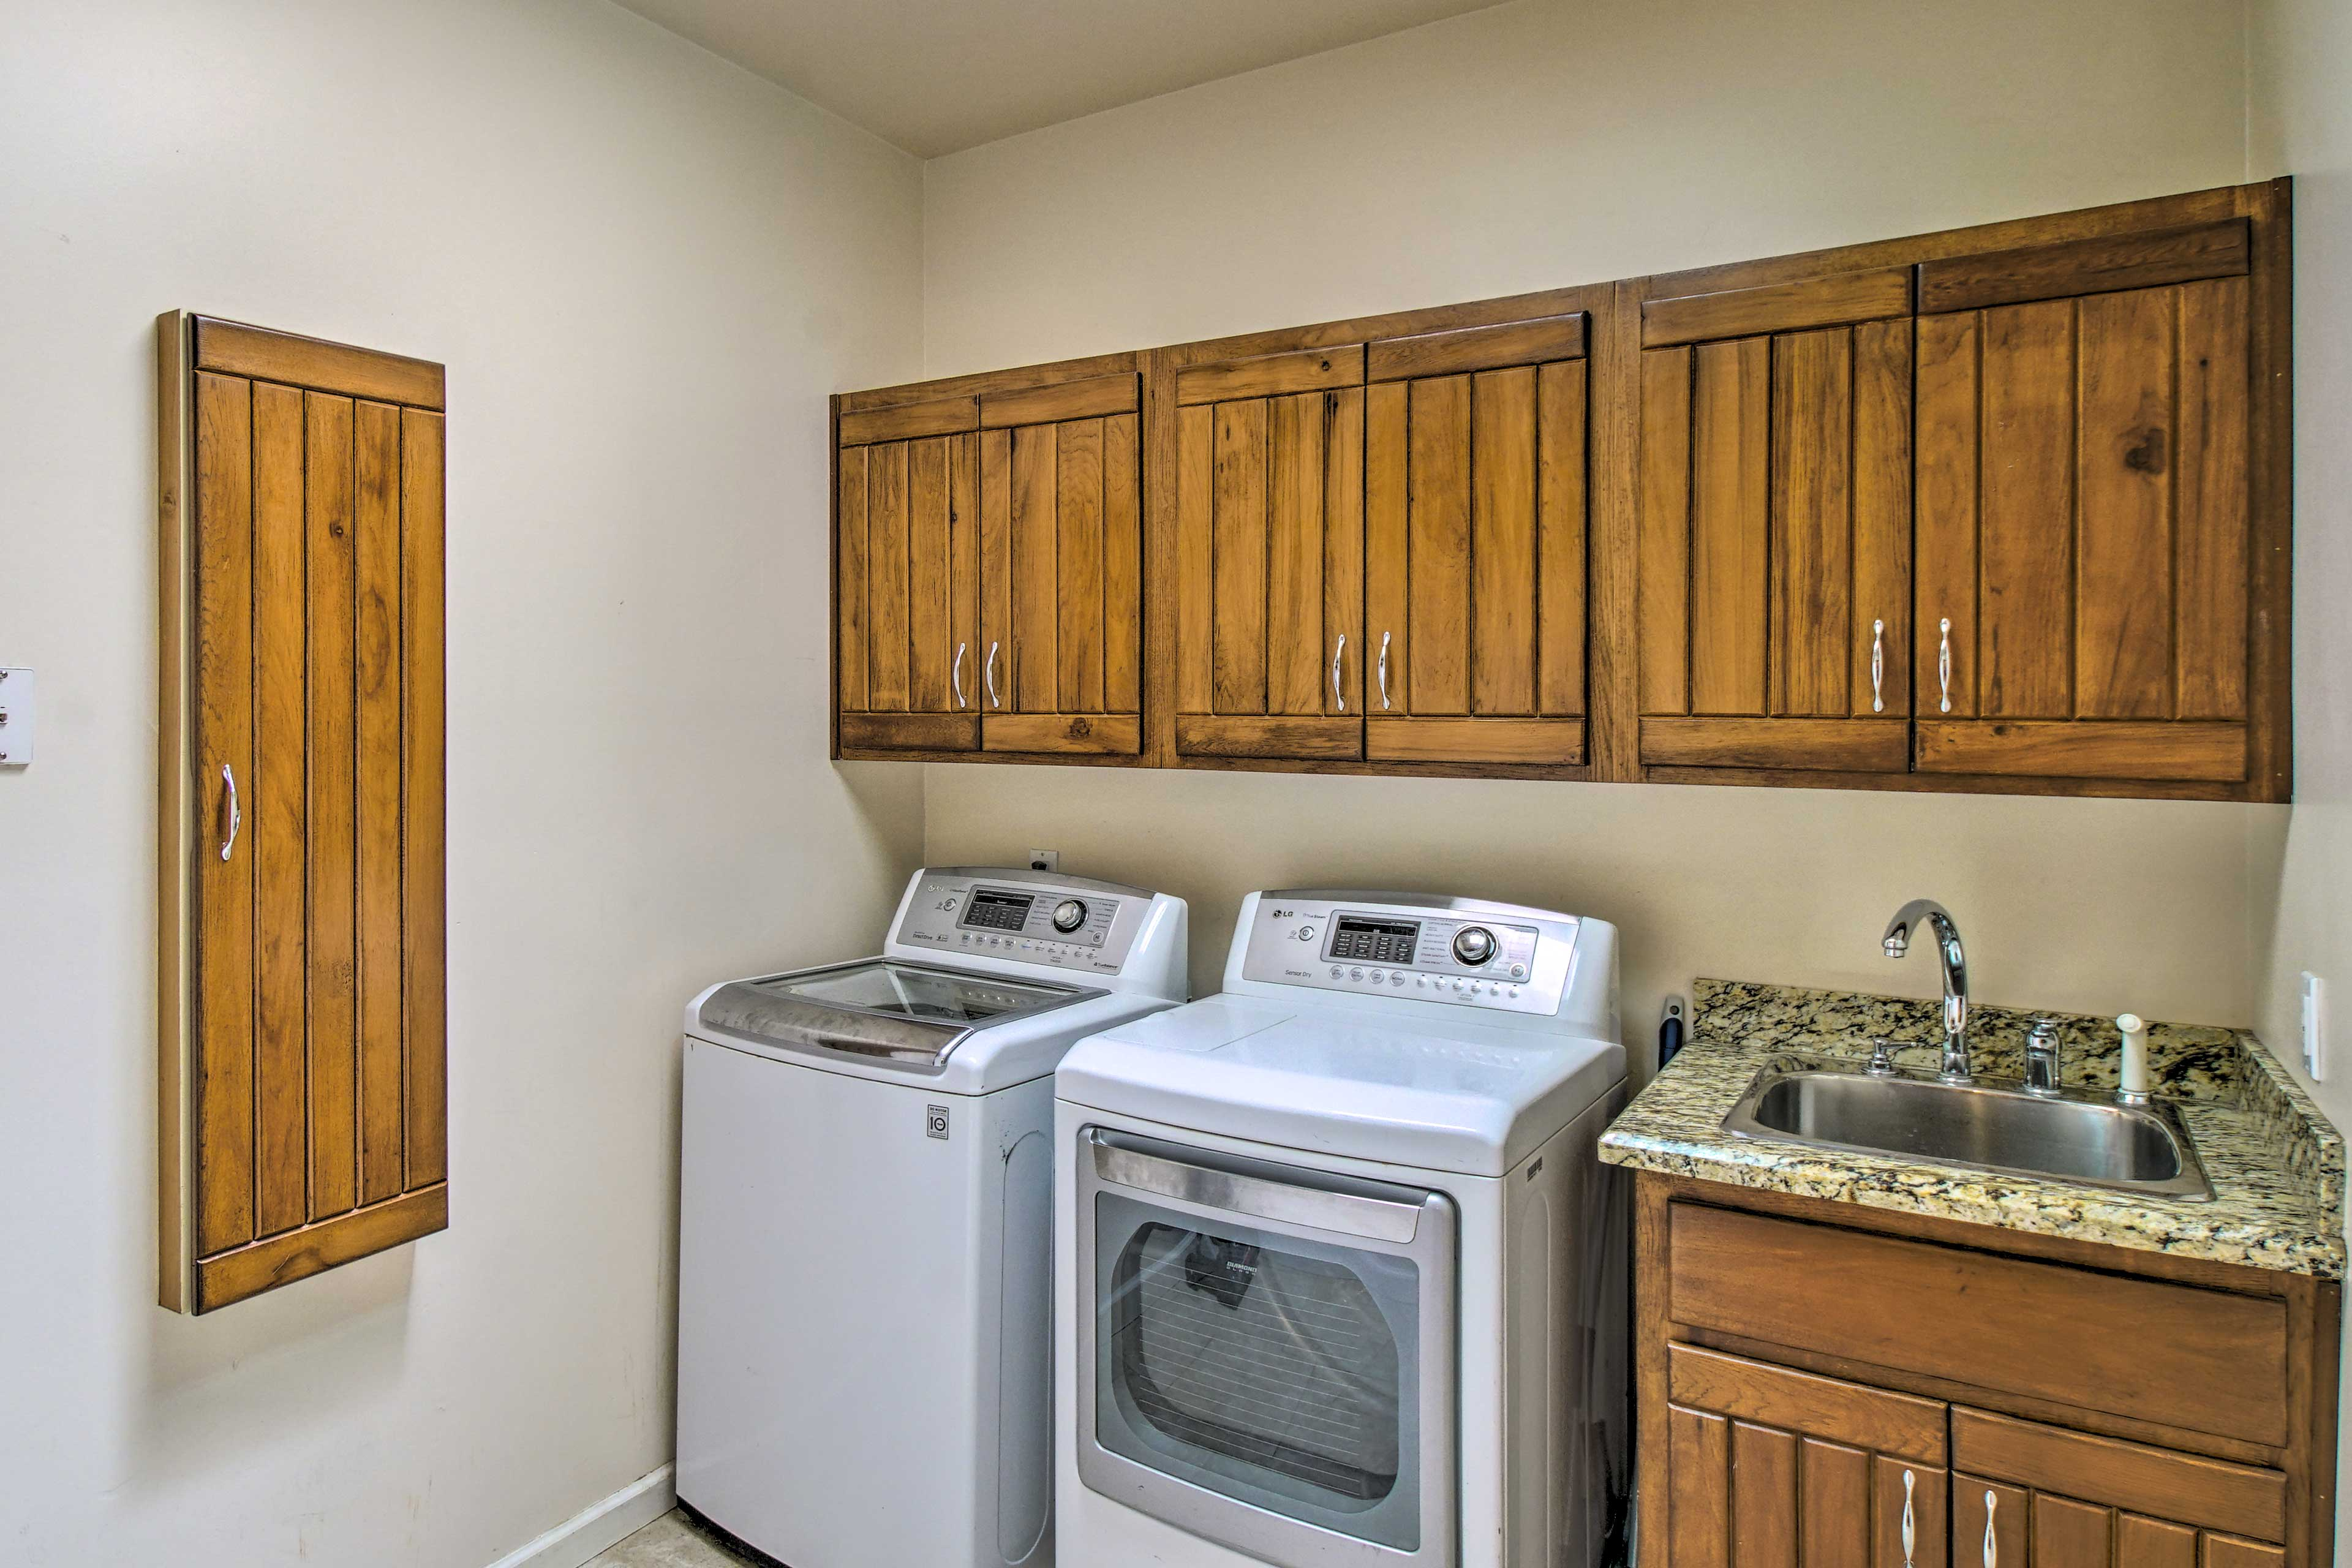 Book a longer stay and enjoy the convenience of in-unit laundry.